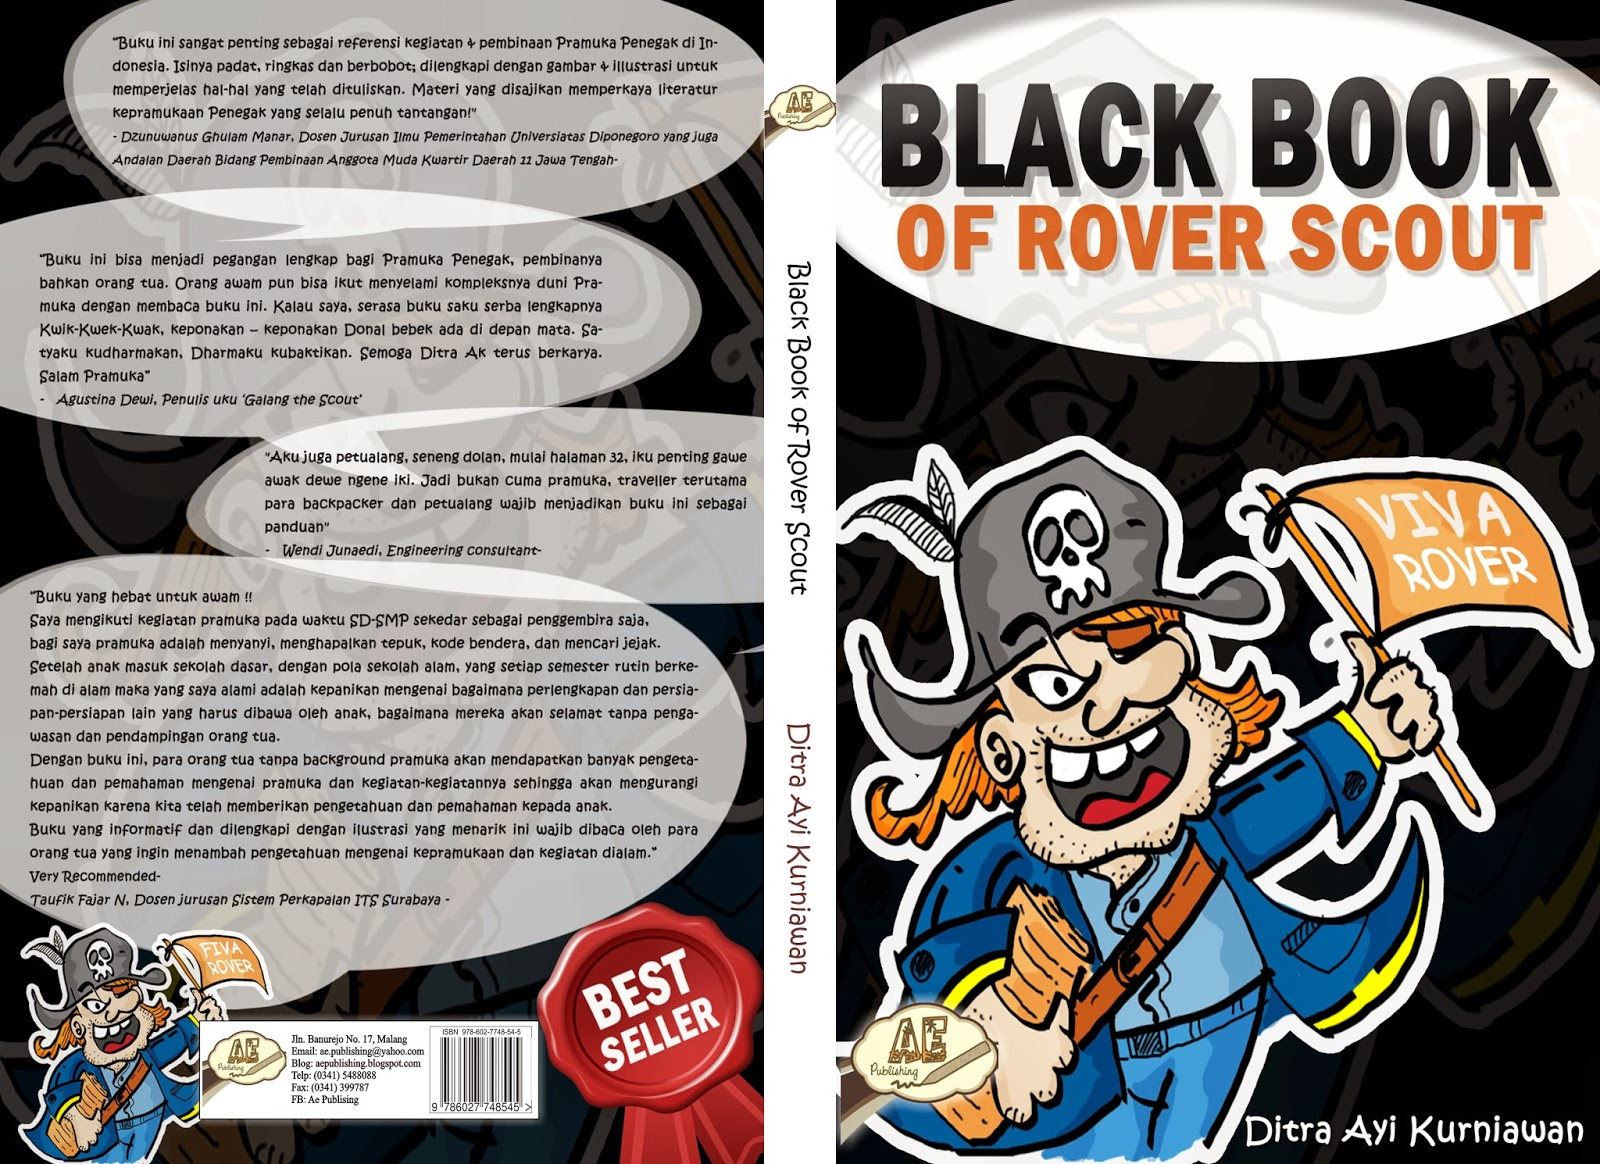 Black Book Of Rever Scout Ae Publishing Penerbit Indie Terbaik